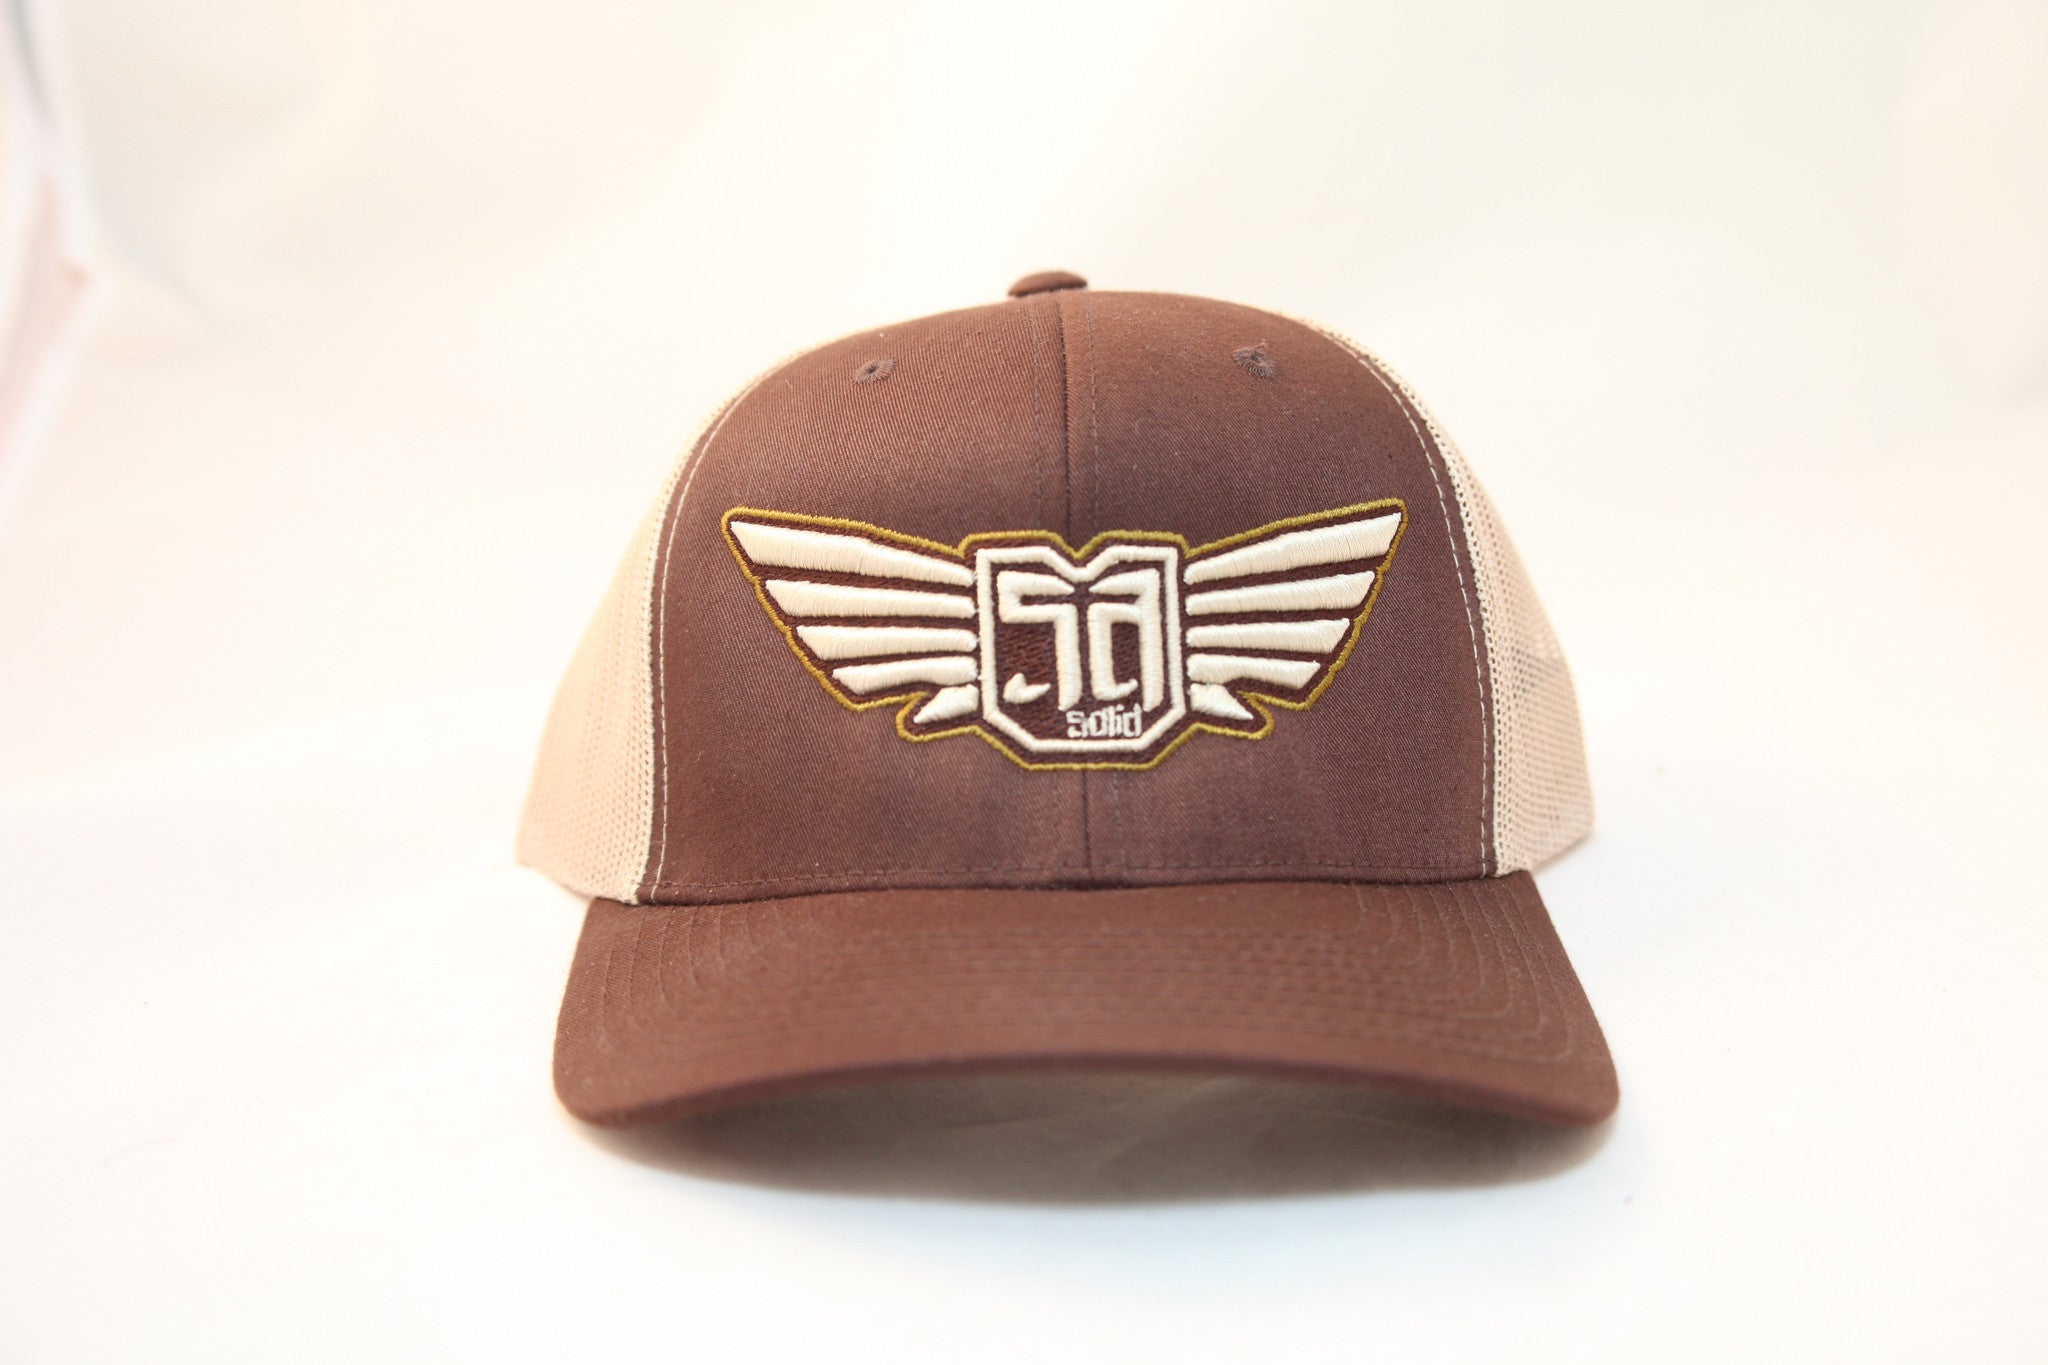 AV8 - MESH BACK - BROWN - WHT / BRN / GLD LOGO